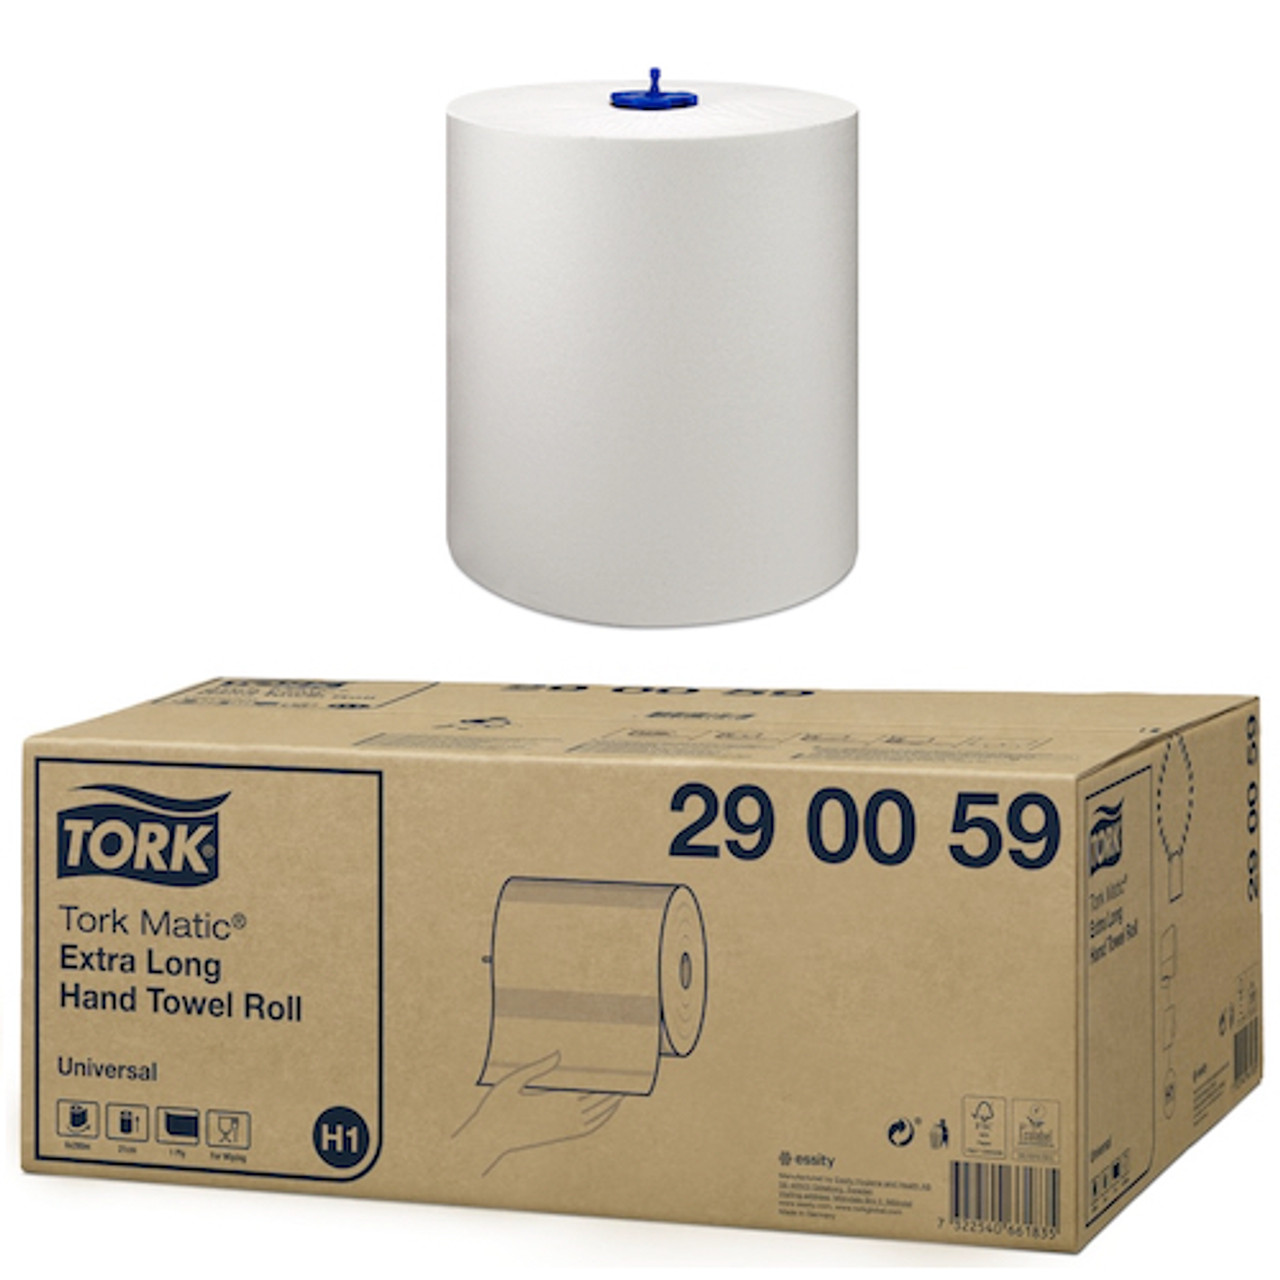 Tork Matic Extra Long Hand Towel Roll H1 System 6 Rolls (290059)